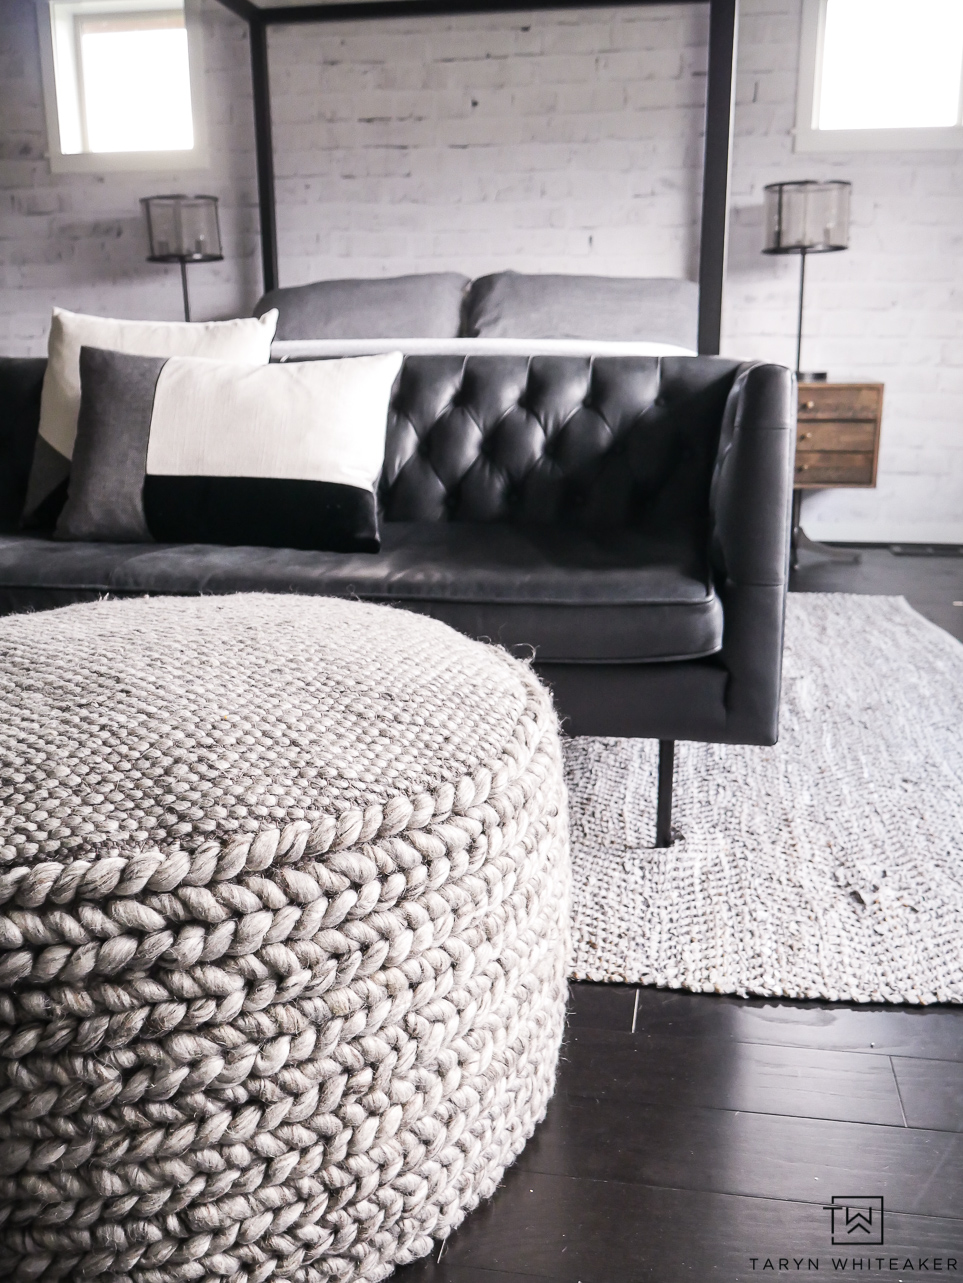 Industrial modern seating area for a bedroom complete with a black leather modern Chesterfield sofa.